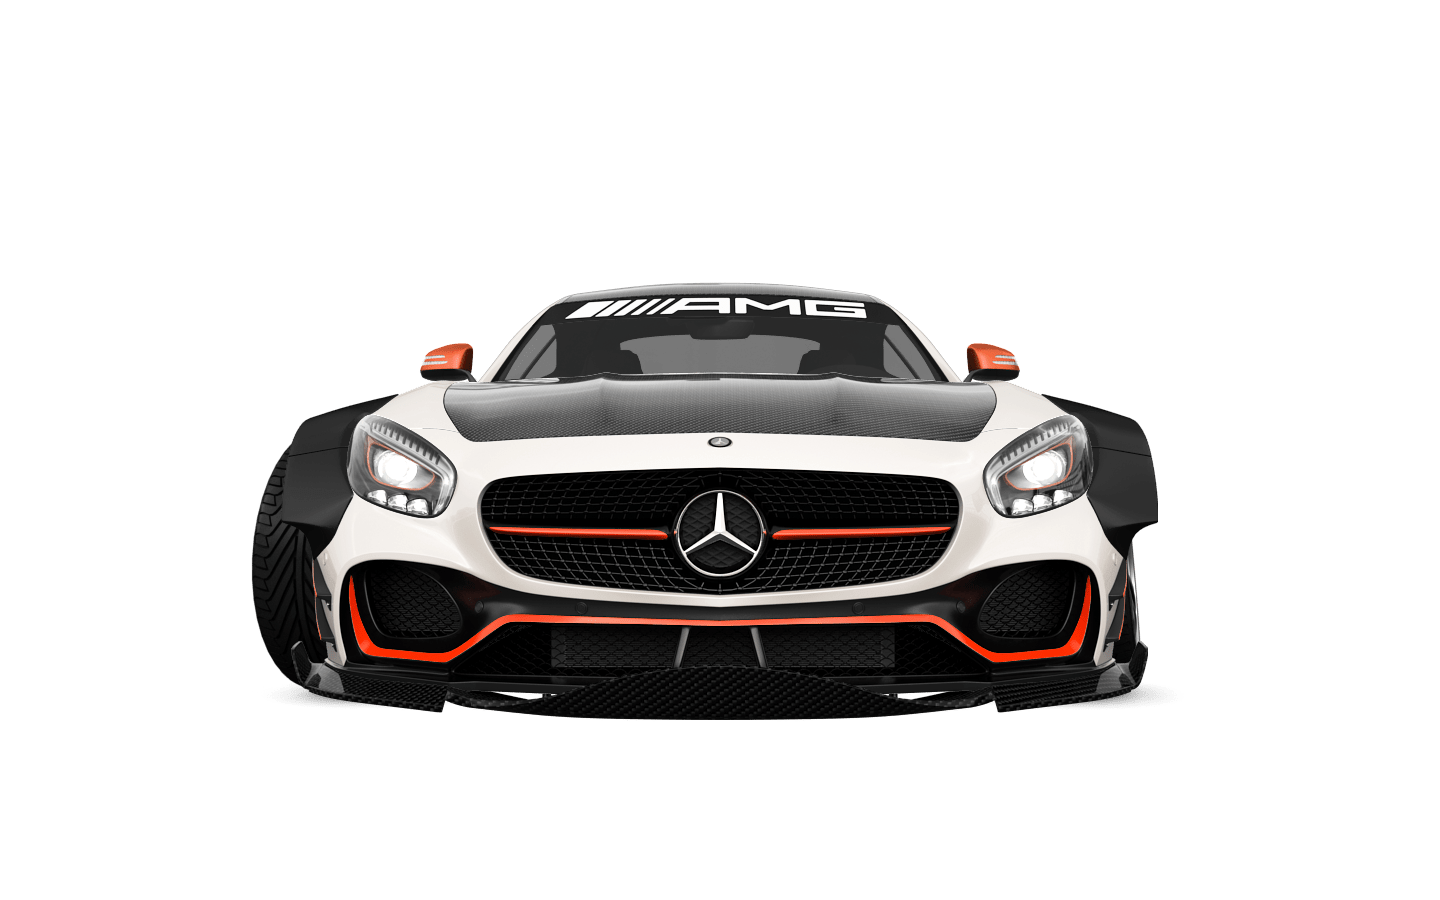 hight resolution of mercedes amg gt 16 by better dayz